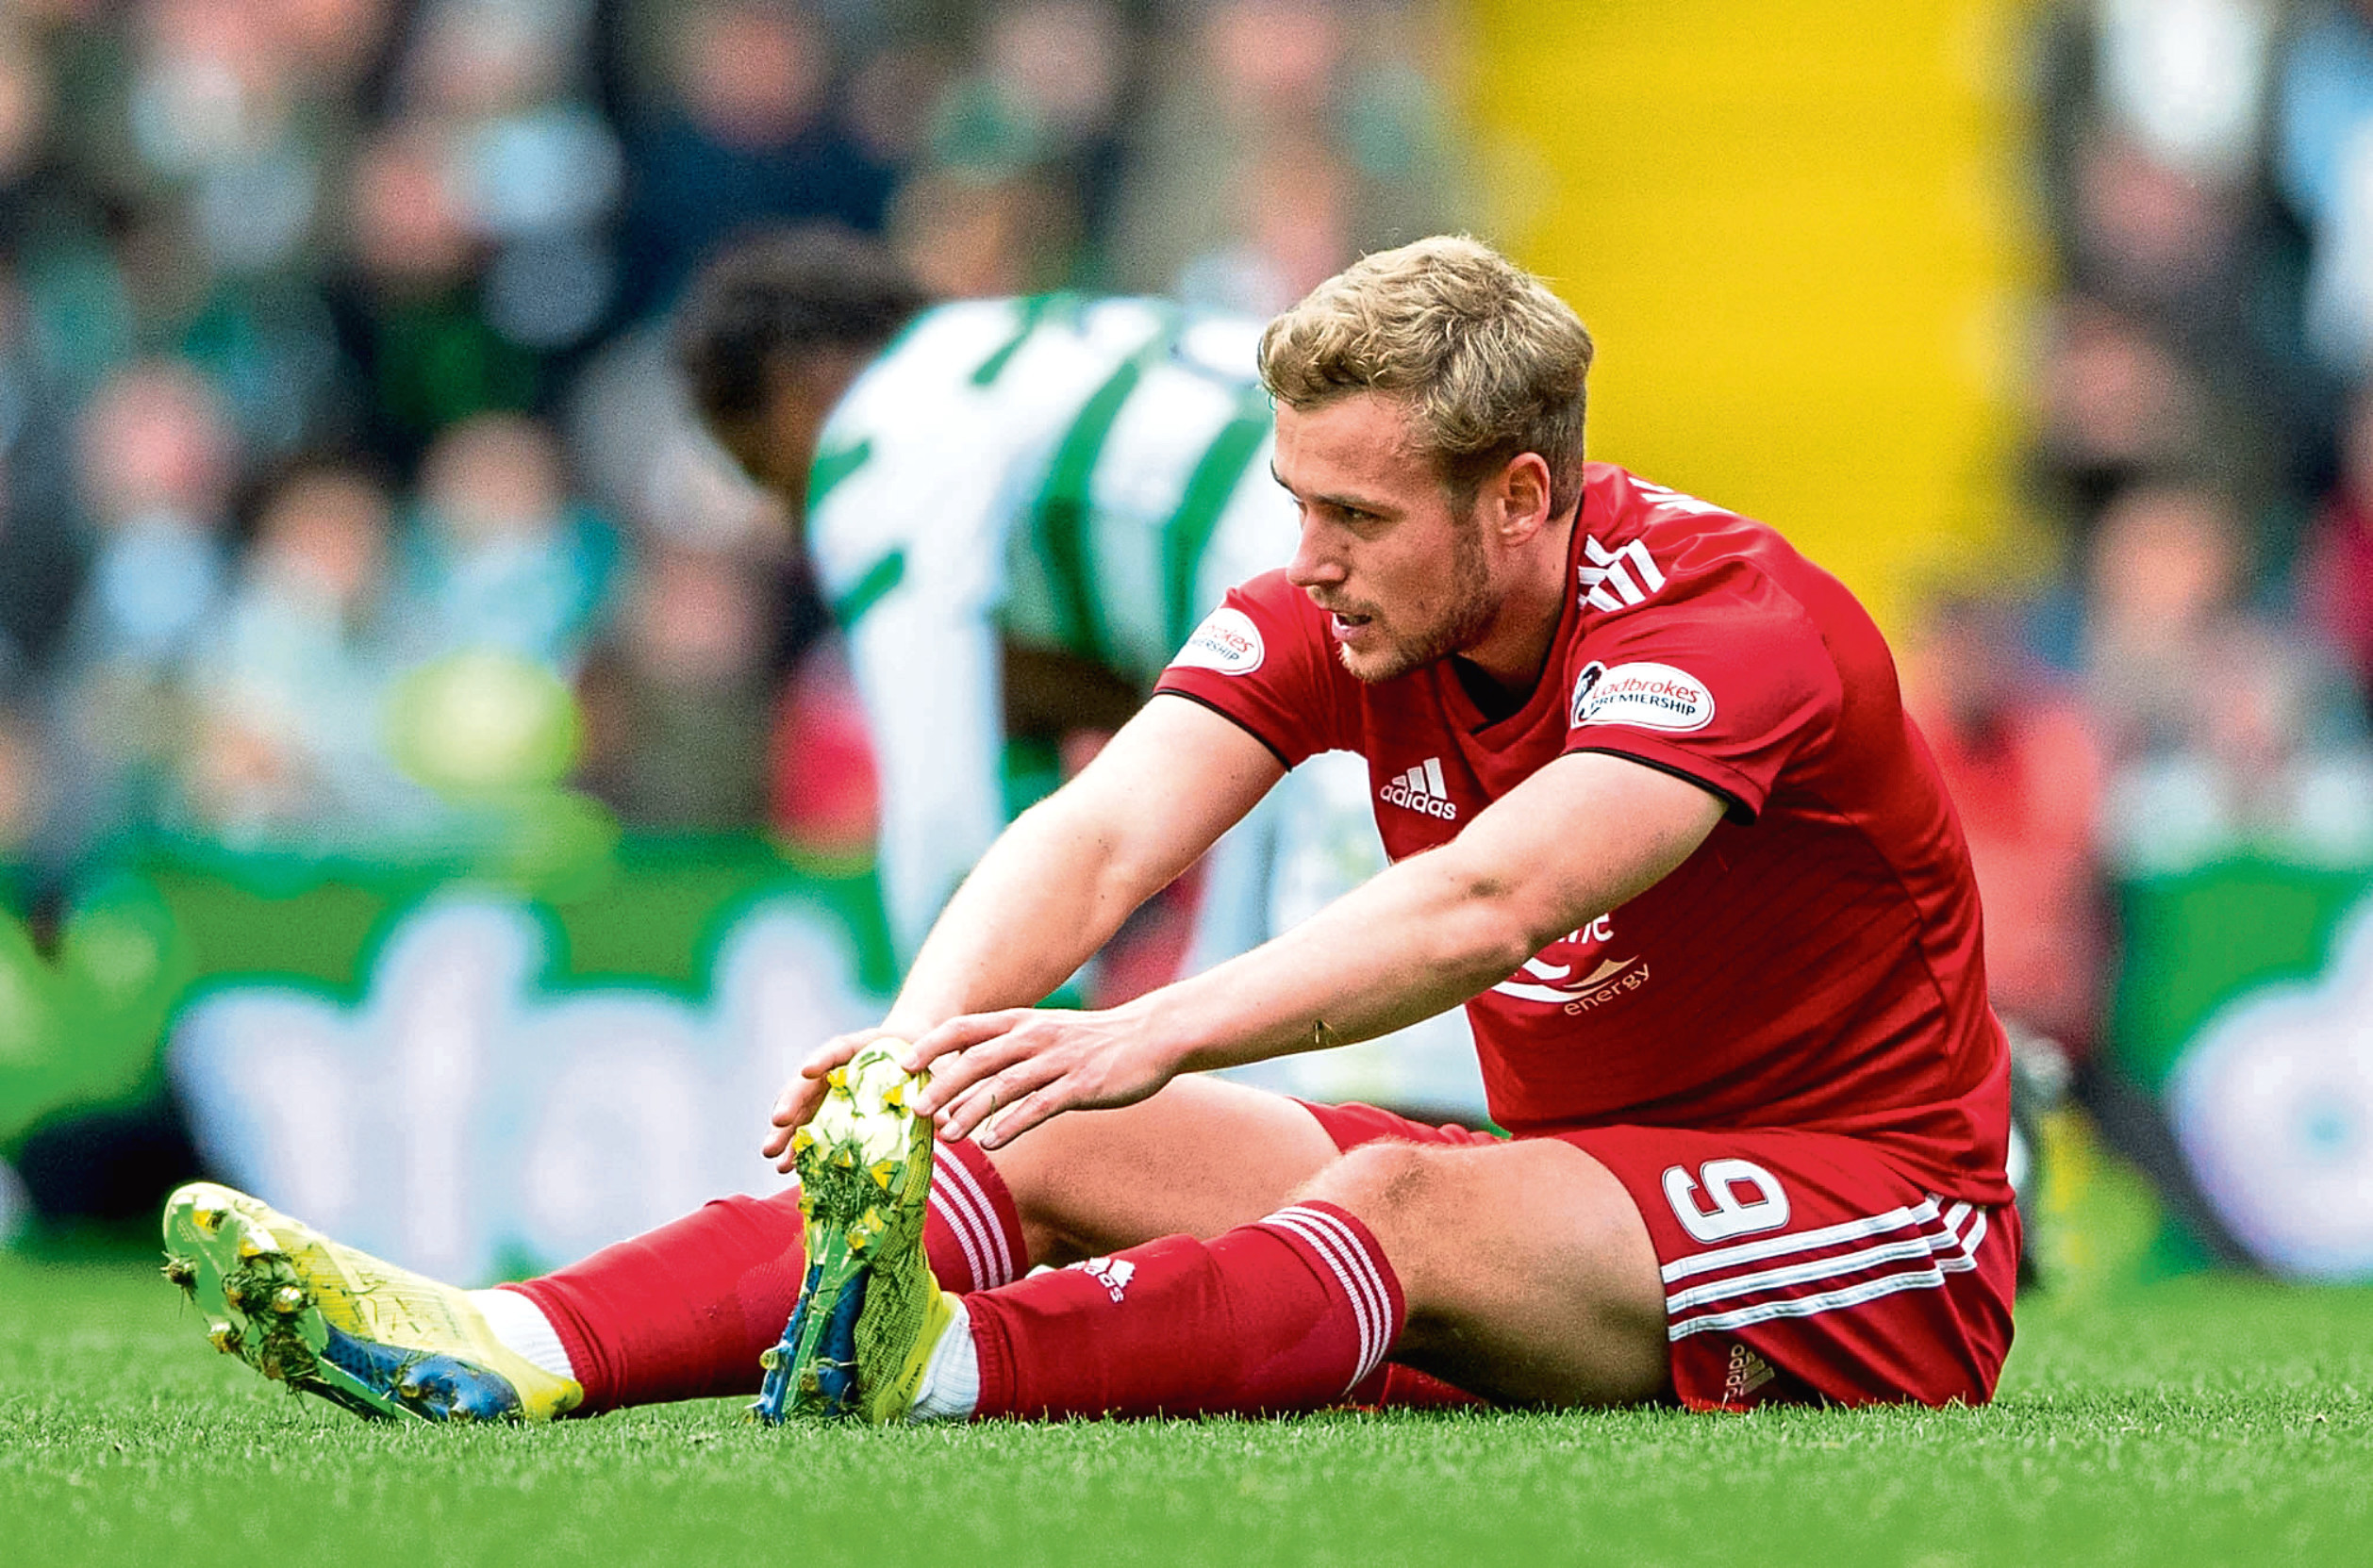 Aberdeen's James Wilson stretches out before being replaced at Parkhead a couple of weeks ago.